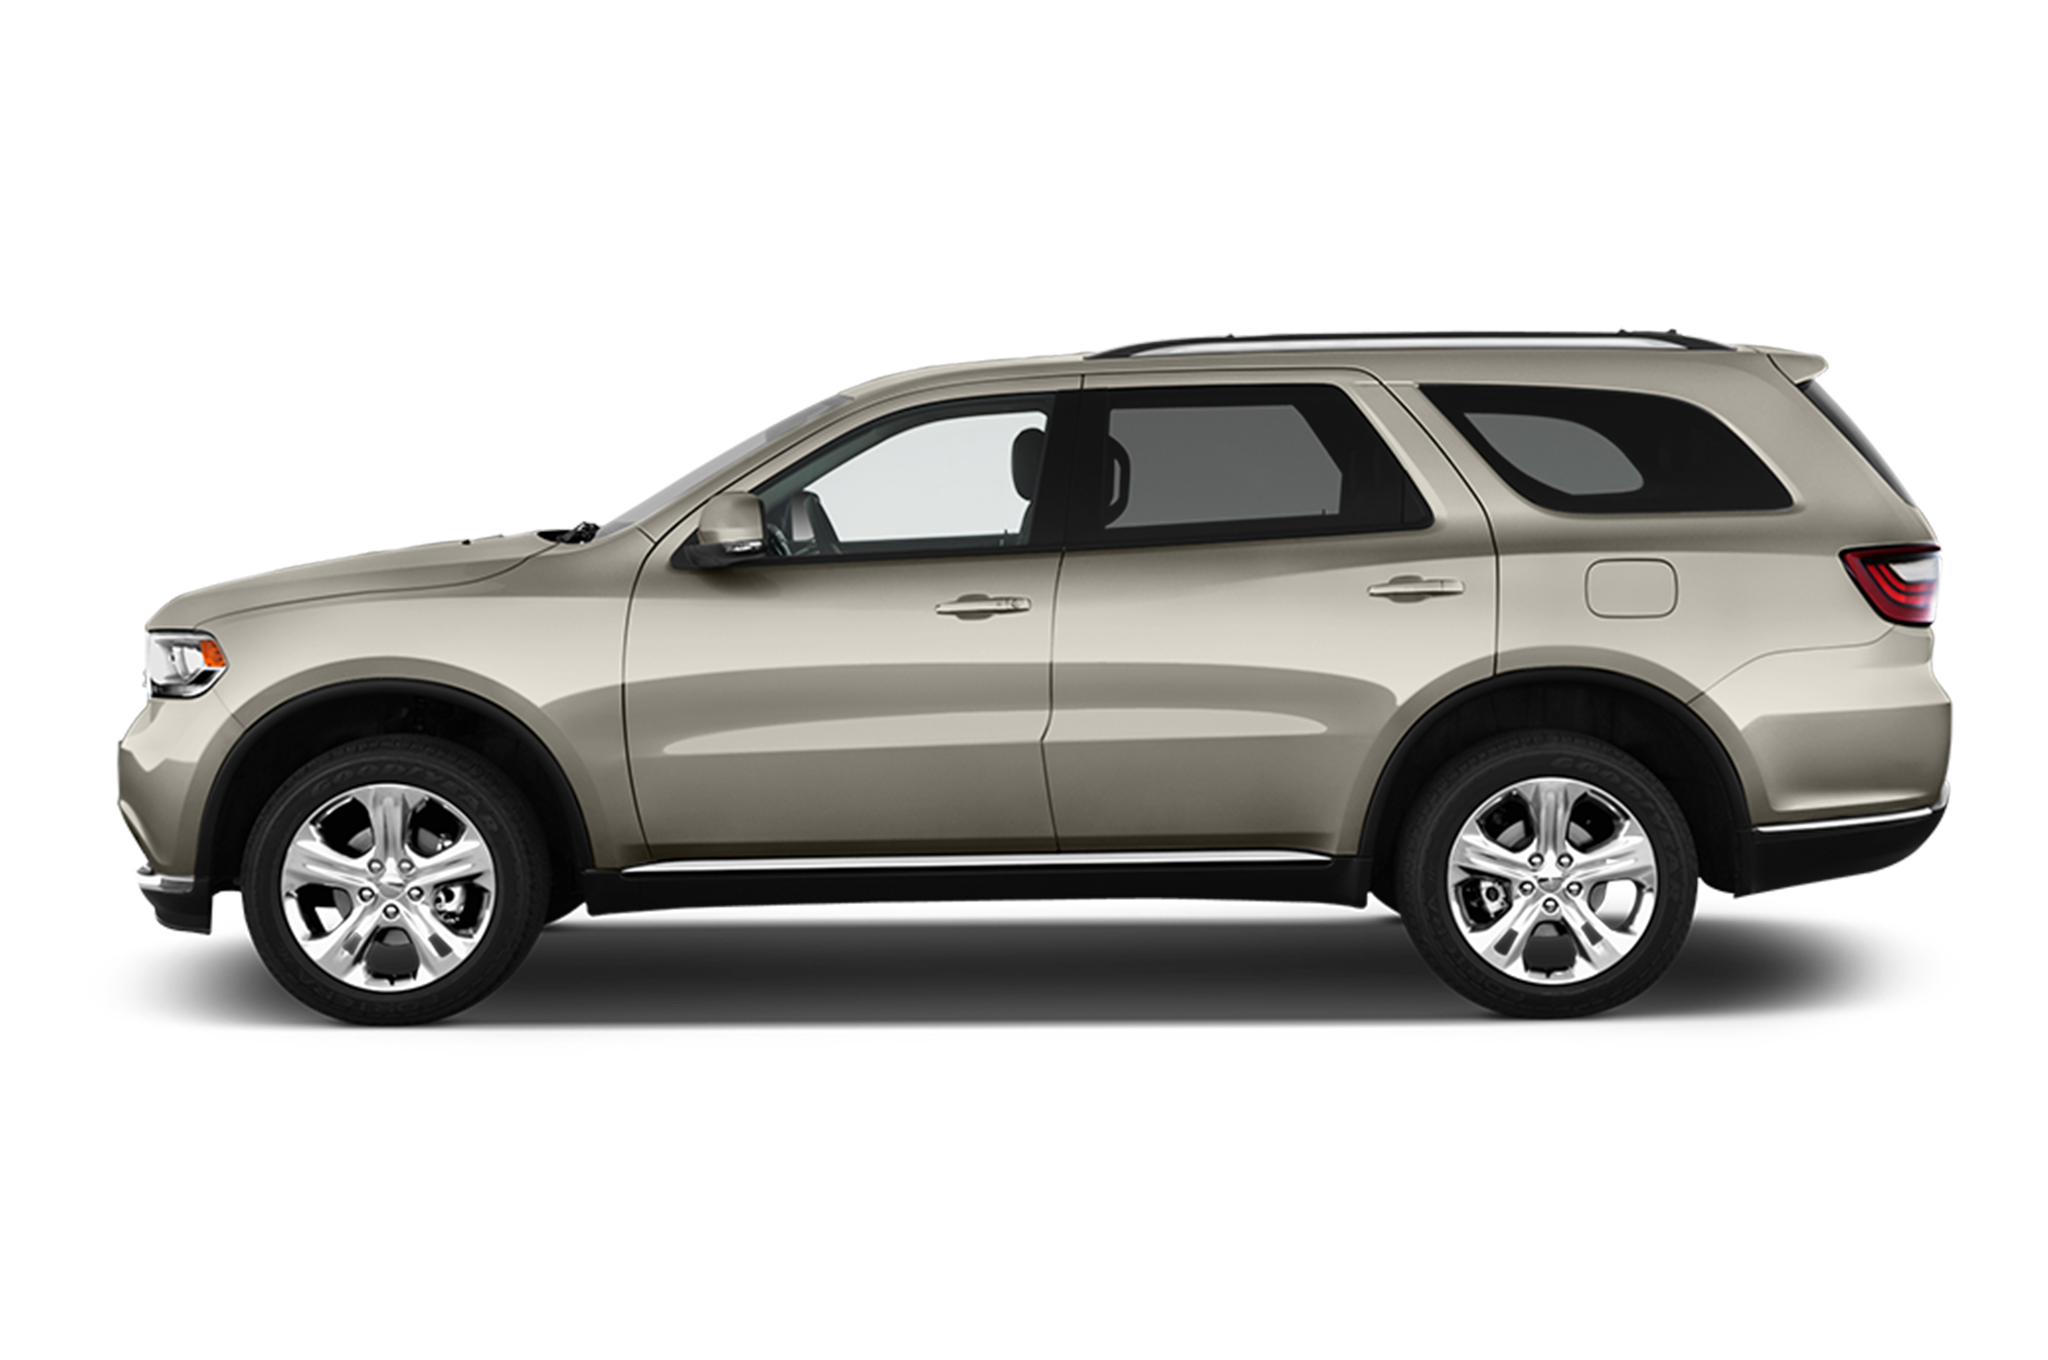 New Dodge Durango Delray Beach FL